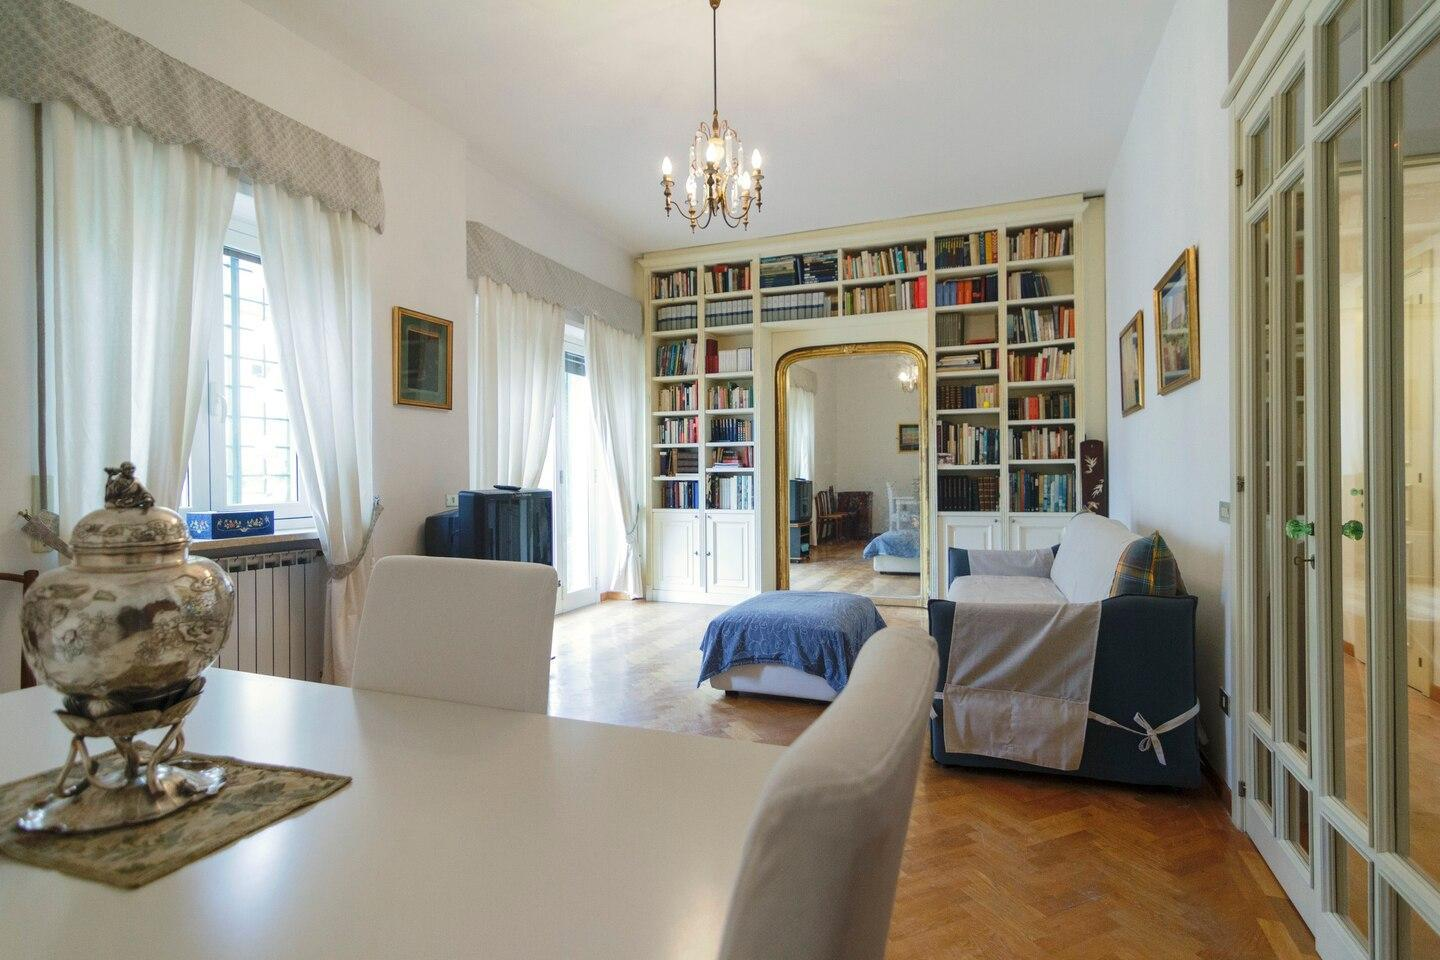 Naples Exclusive Getaway   With Private Parking